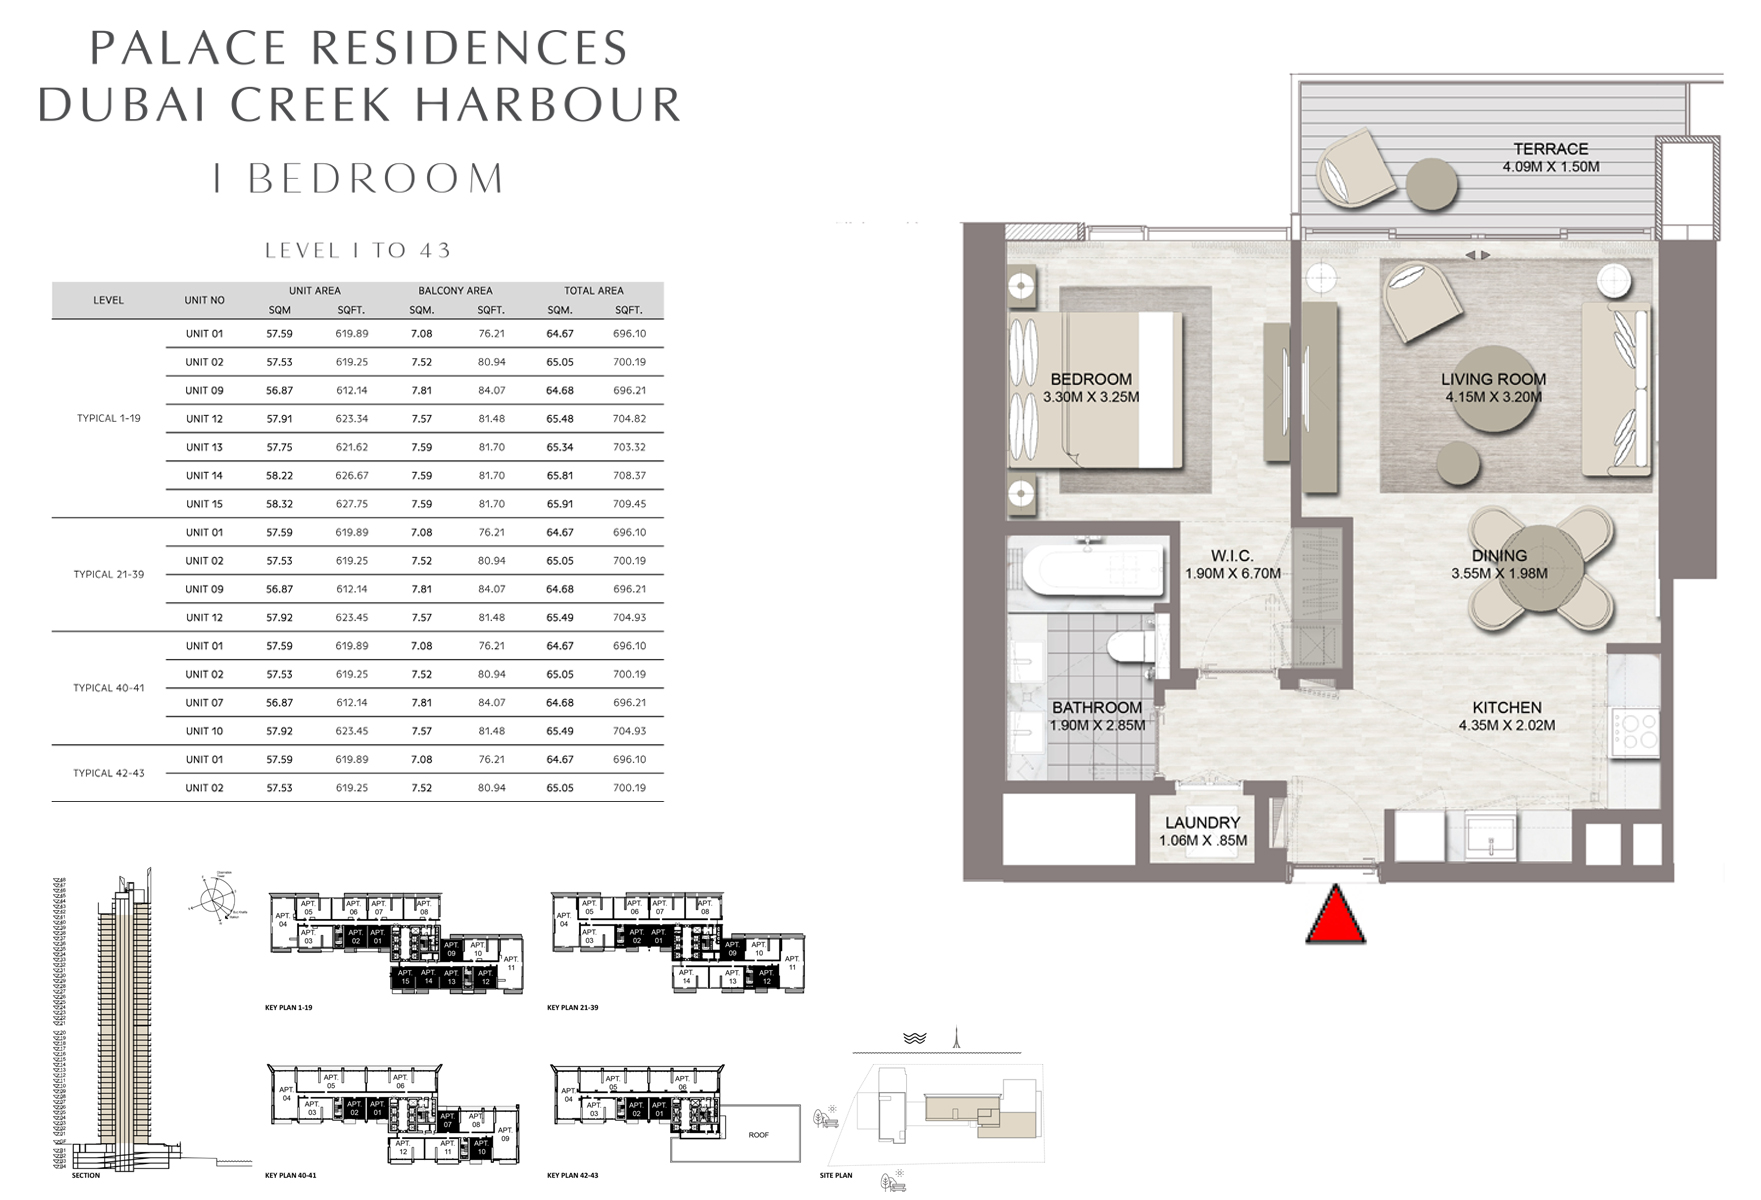 1 Bedroom - Level 1 To 43 Size 696.10 to 708.37 sq ft